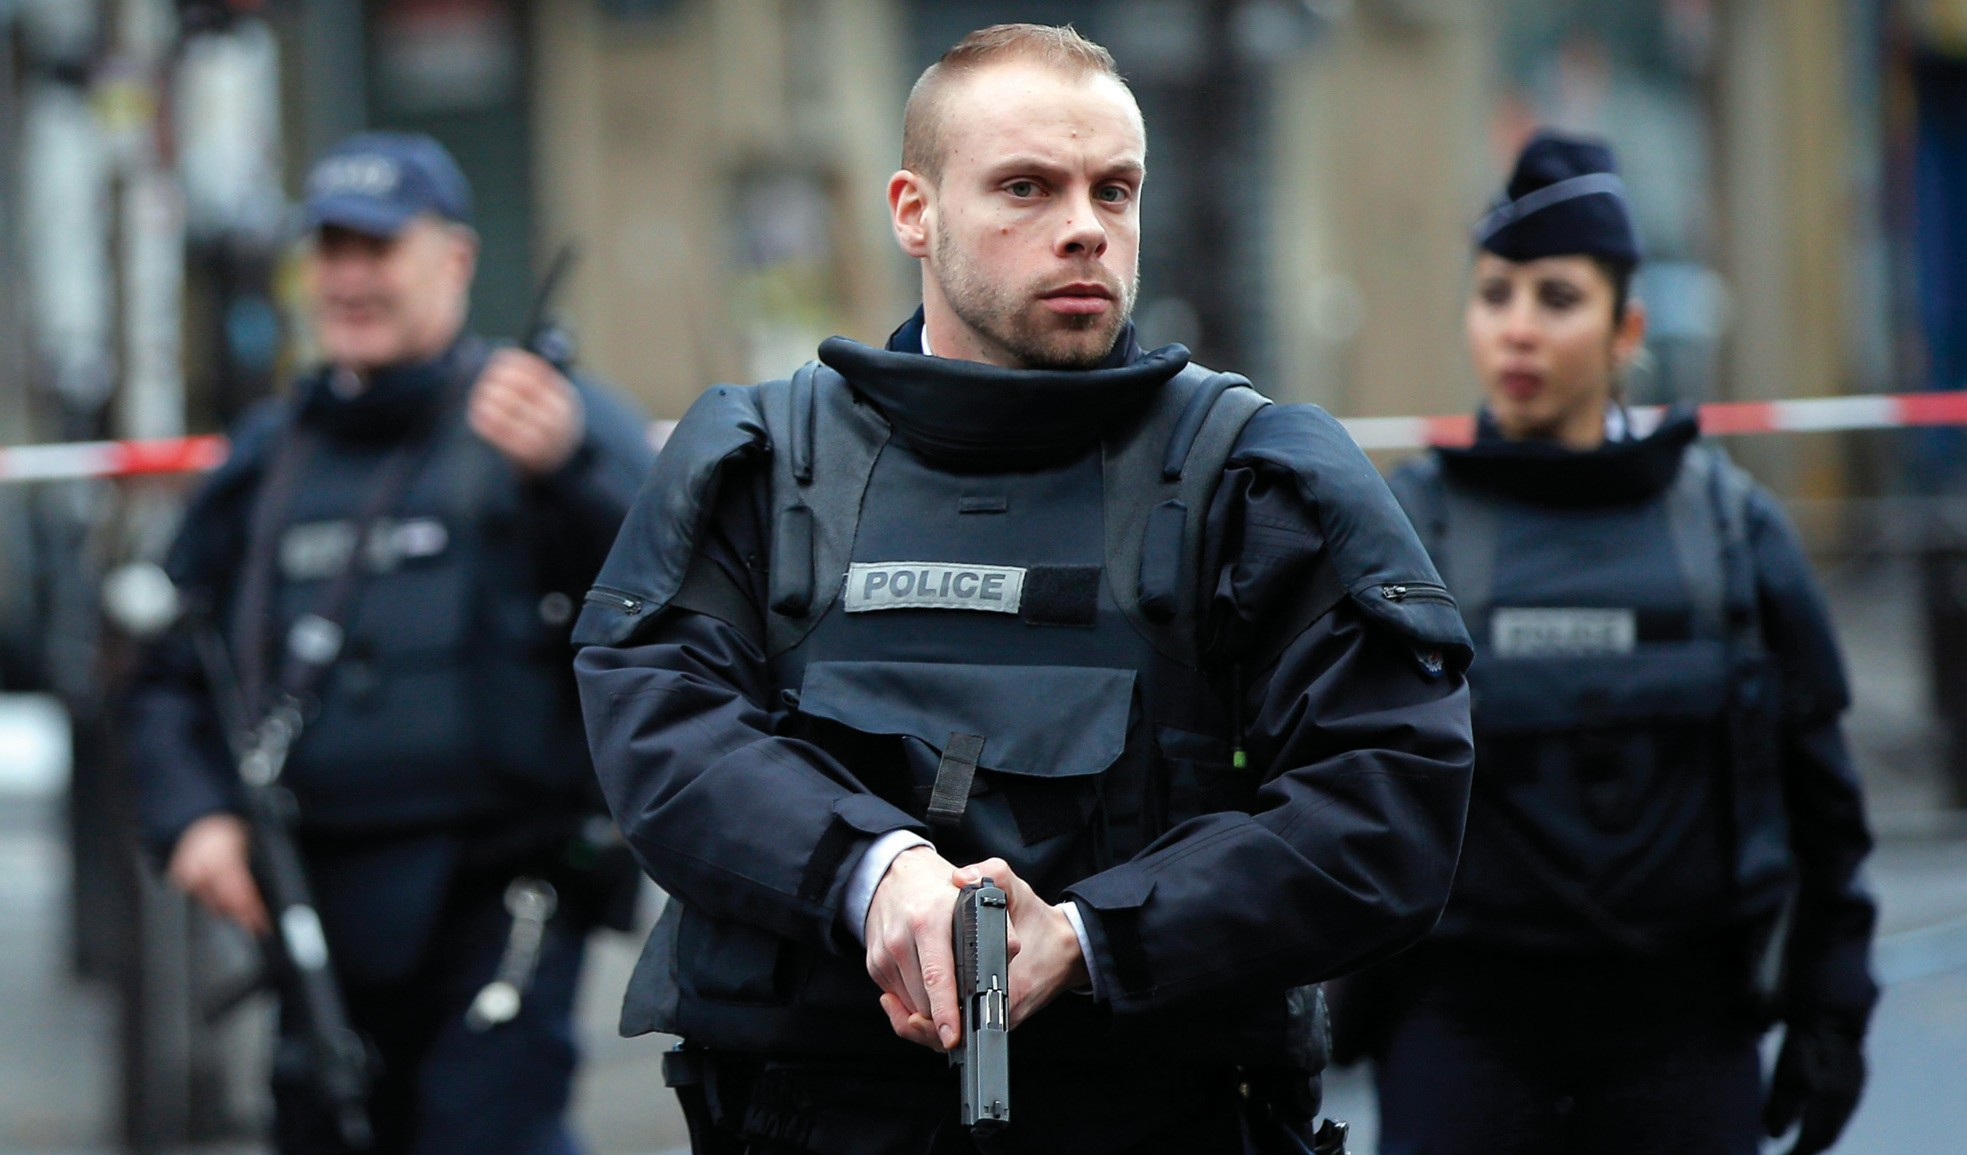 Police officers secure the perimeter near the scene of a fatal shooting which took place at a police station in Paris on Wednesday.